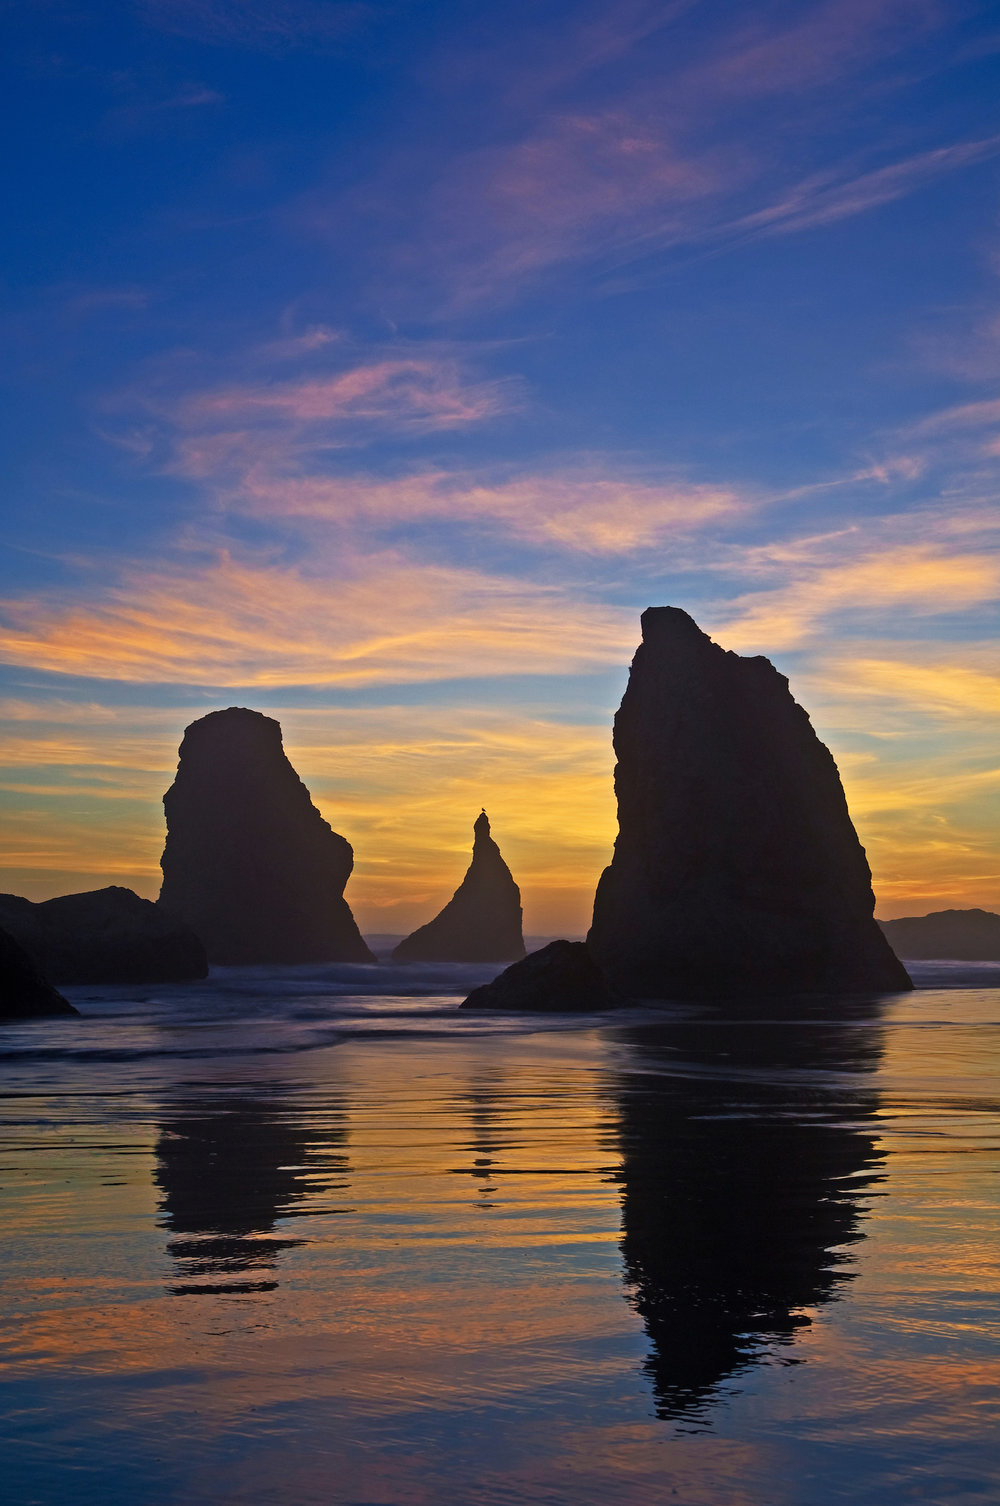 muench-workshops-Bandon-Beach-sea-stacks-oregon-coast copy.jpg